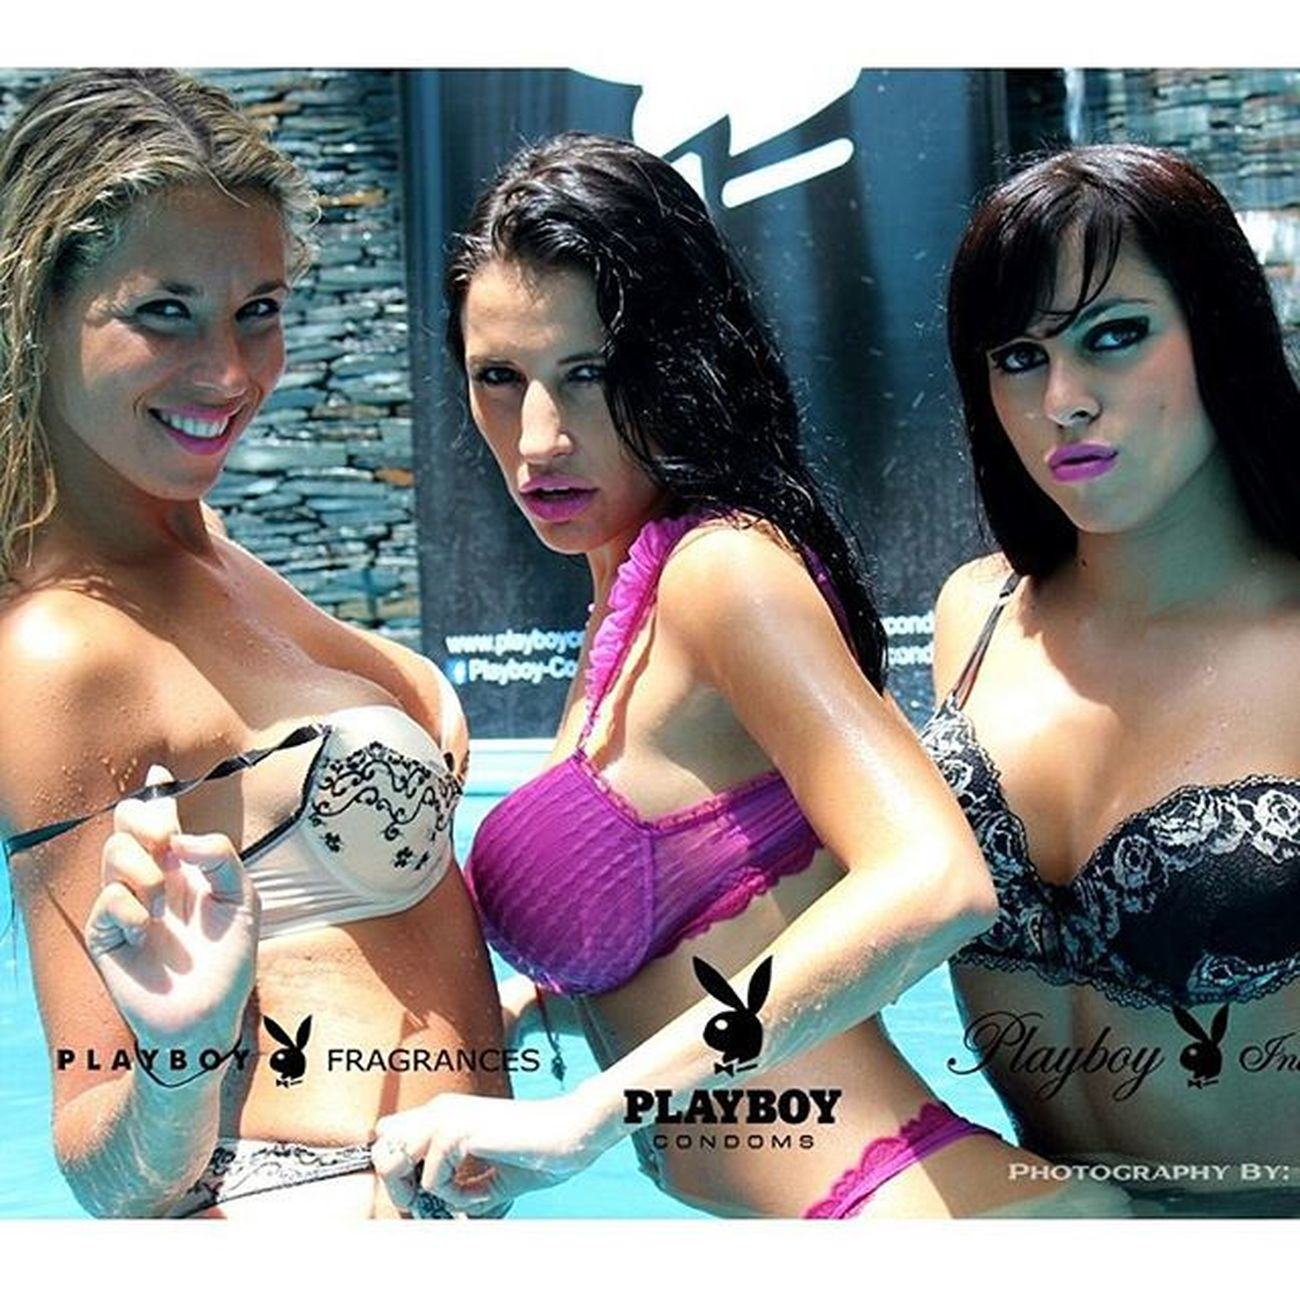 Playboytour Playboylifestyle Pinamar Verano Ph Elsanto Playmates @andrea_anido @lauracattay @_paulacastillo Albar Building Piscina Sun Photodays Summertime Photobomb By  Playboycondoms Playboyintimates Playboyfragrances